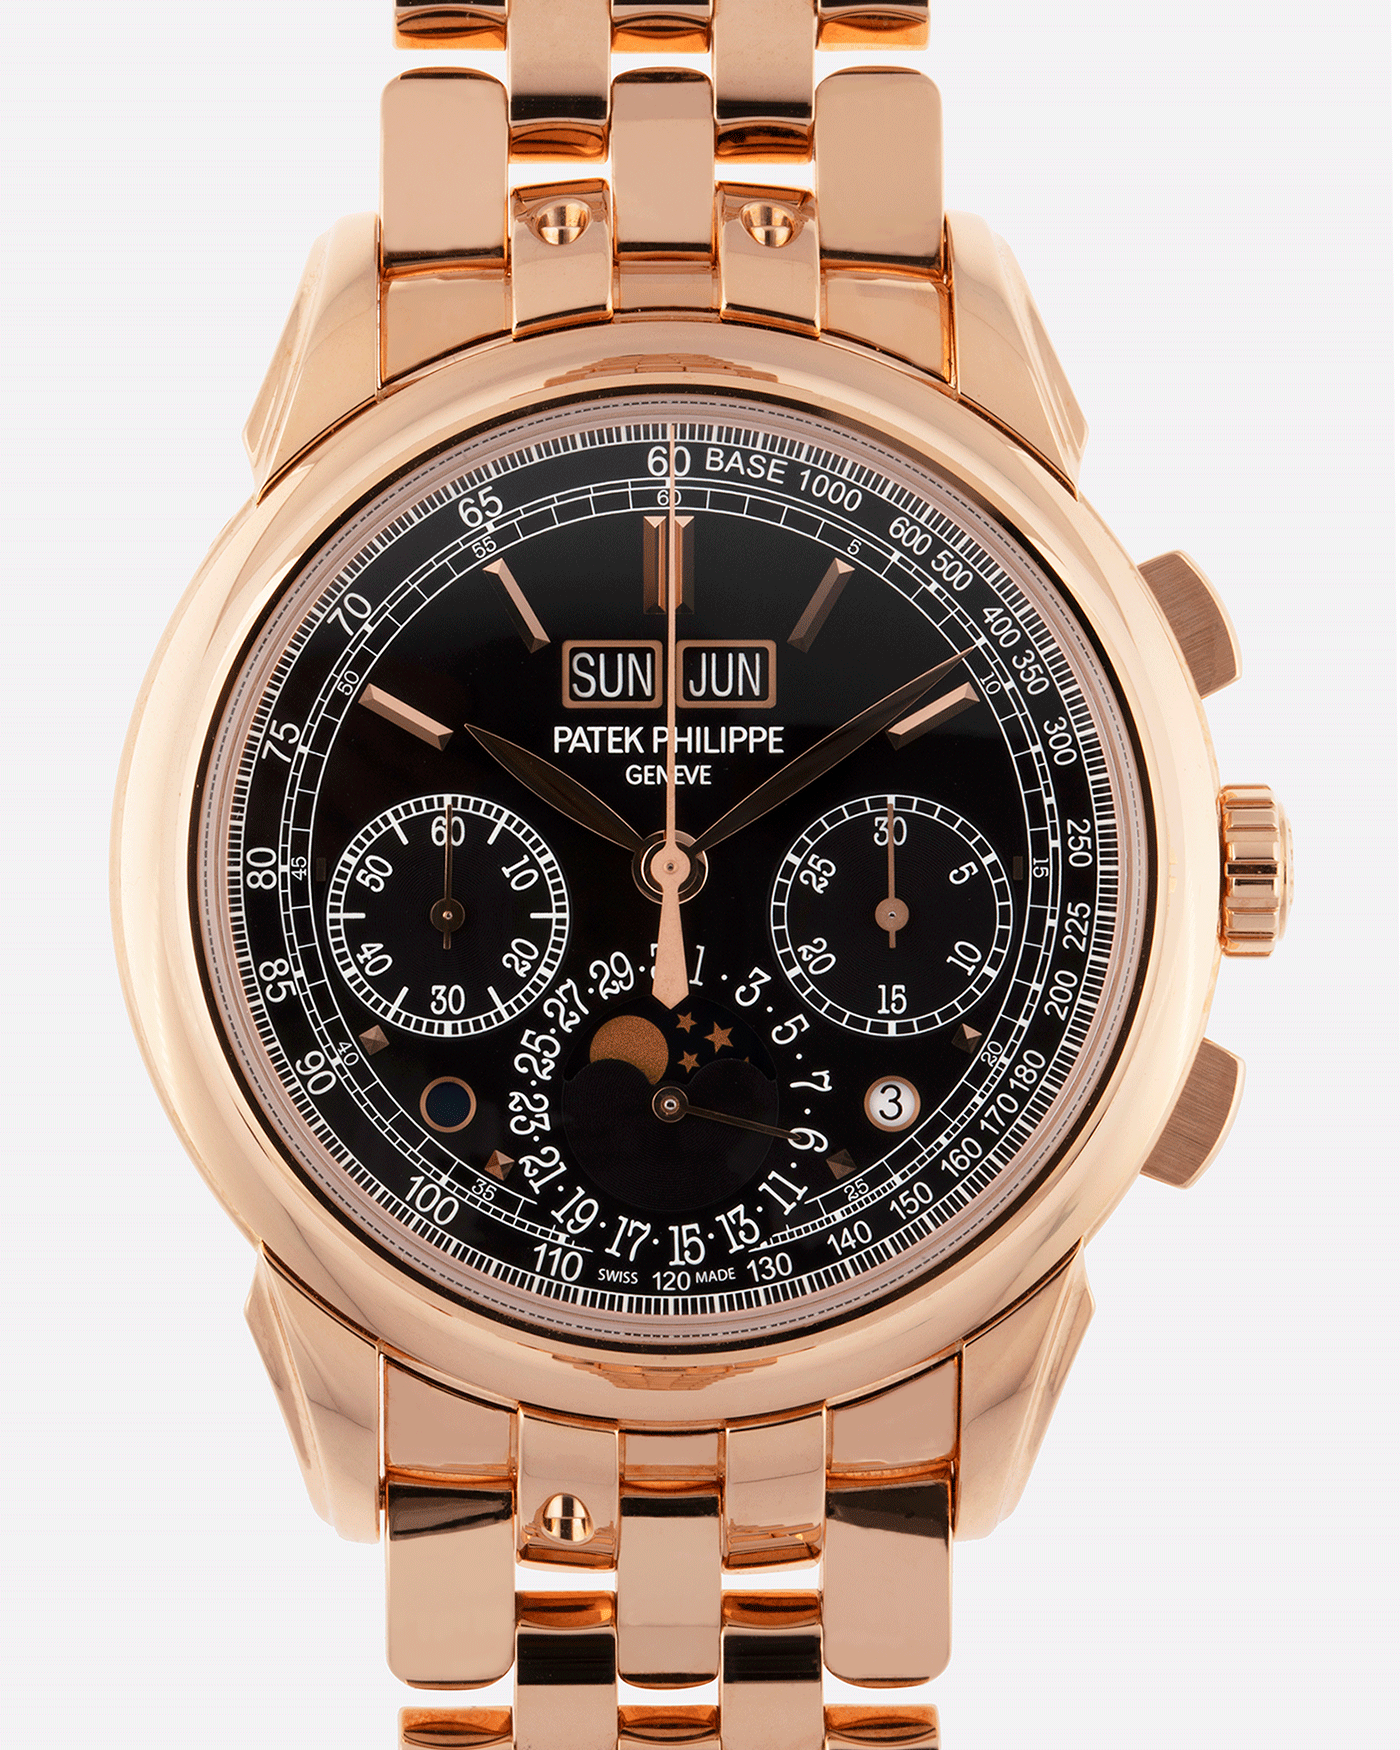 Patek Philippe 5270R Perpetual Calendar Chronograph Watch | S.Song Timepieces